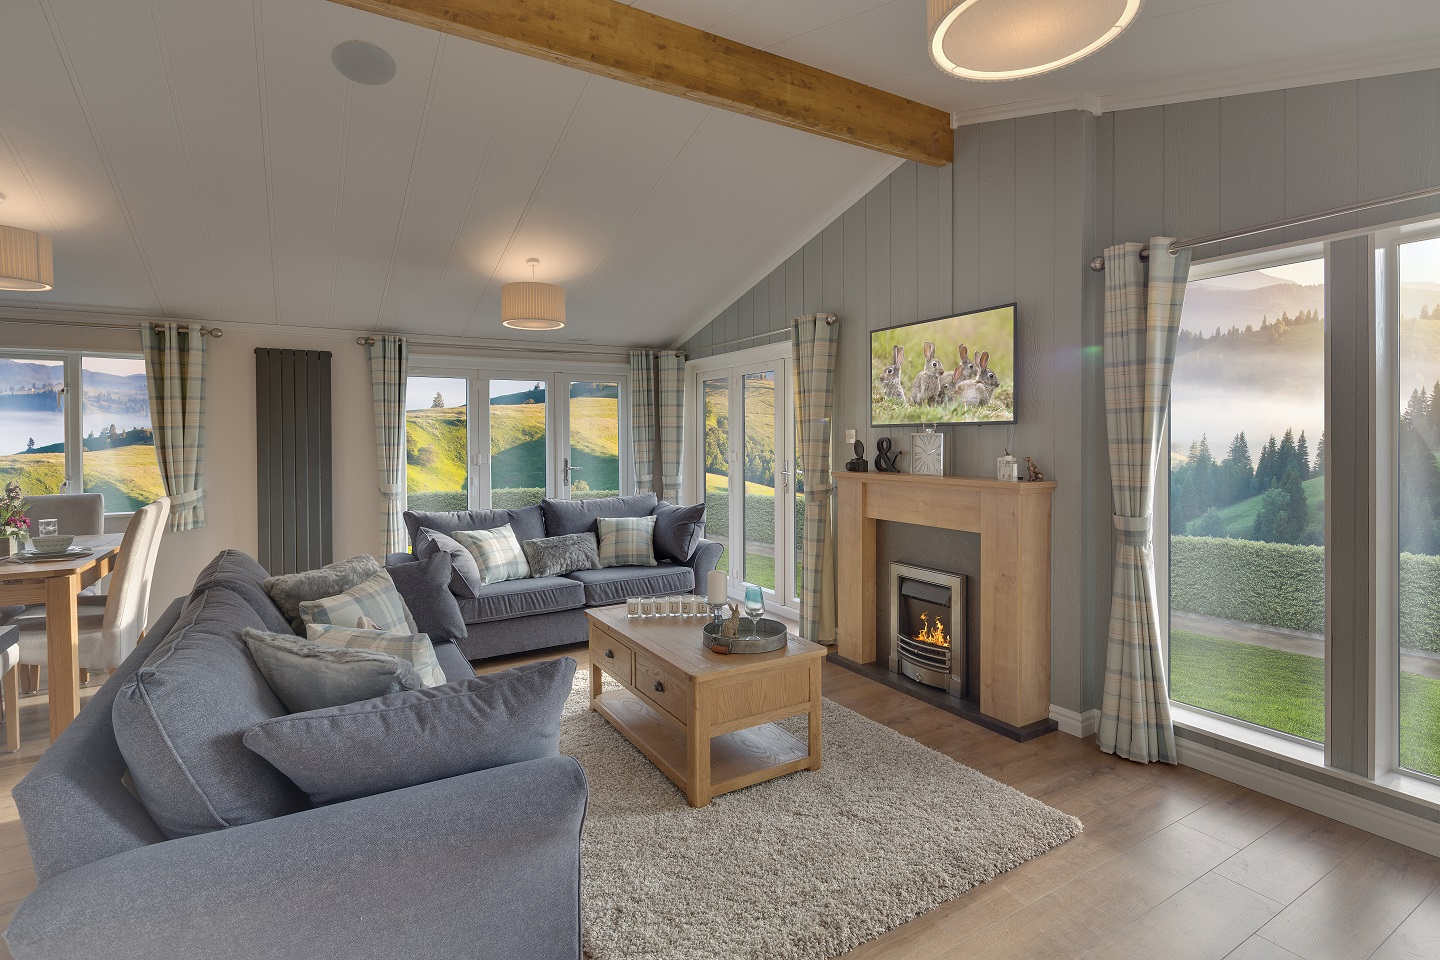 Willerby Juniper: New Holiday Lodges for Sale, Available to Order Large Image 1